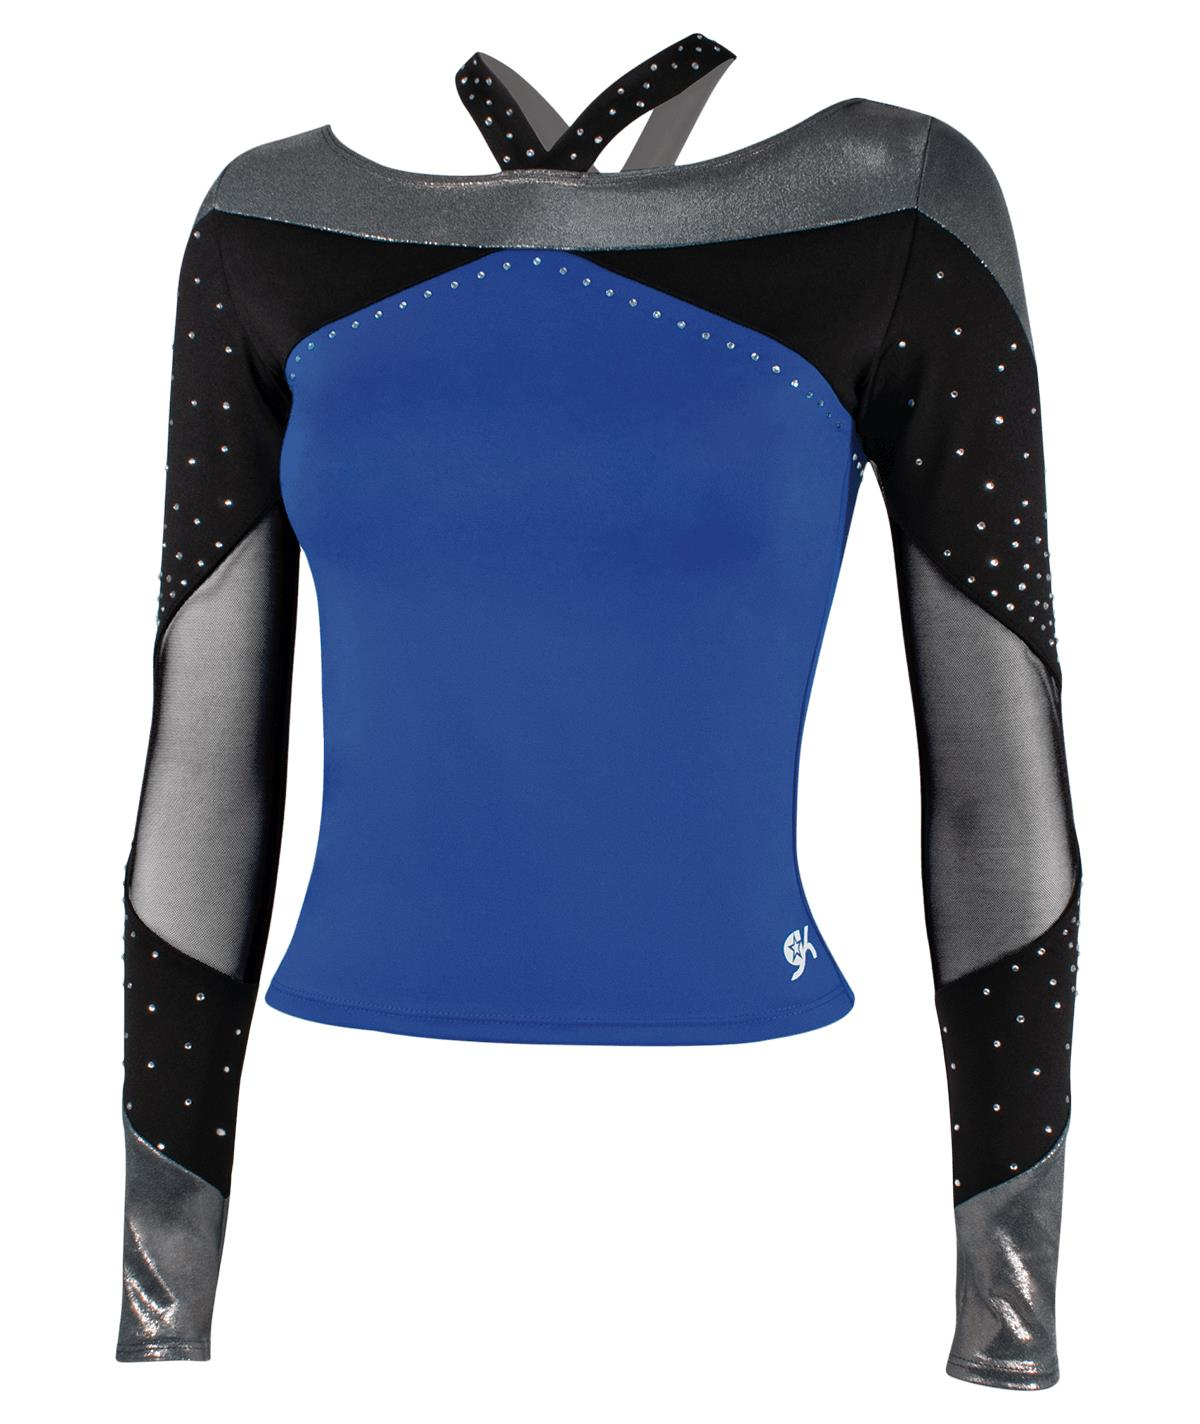 GK All Star Fearless Top